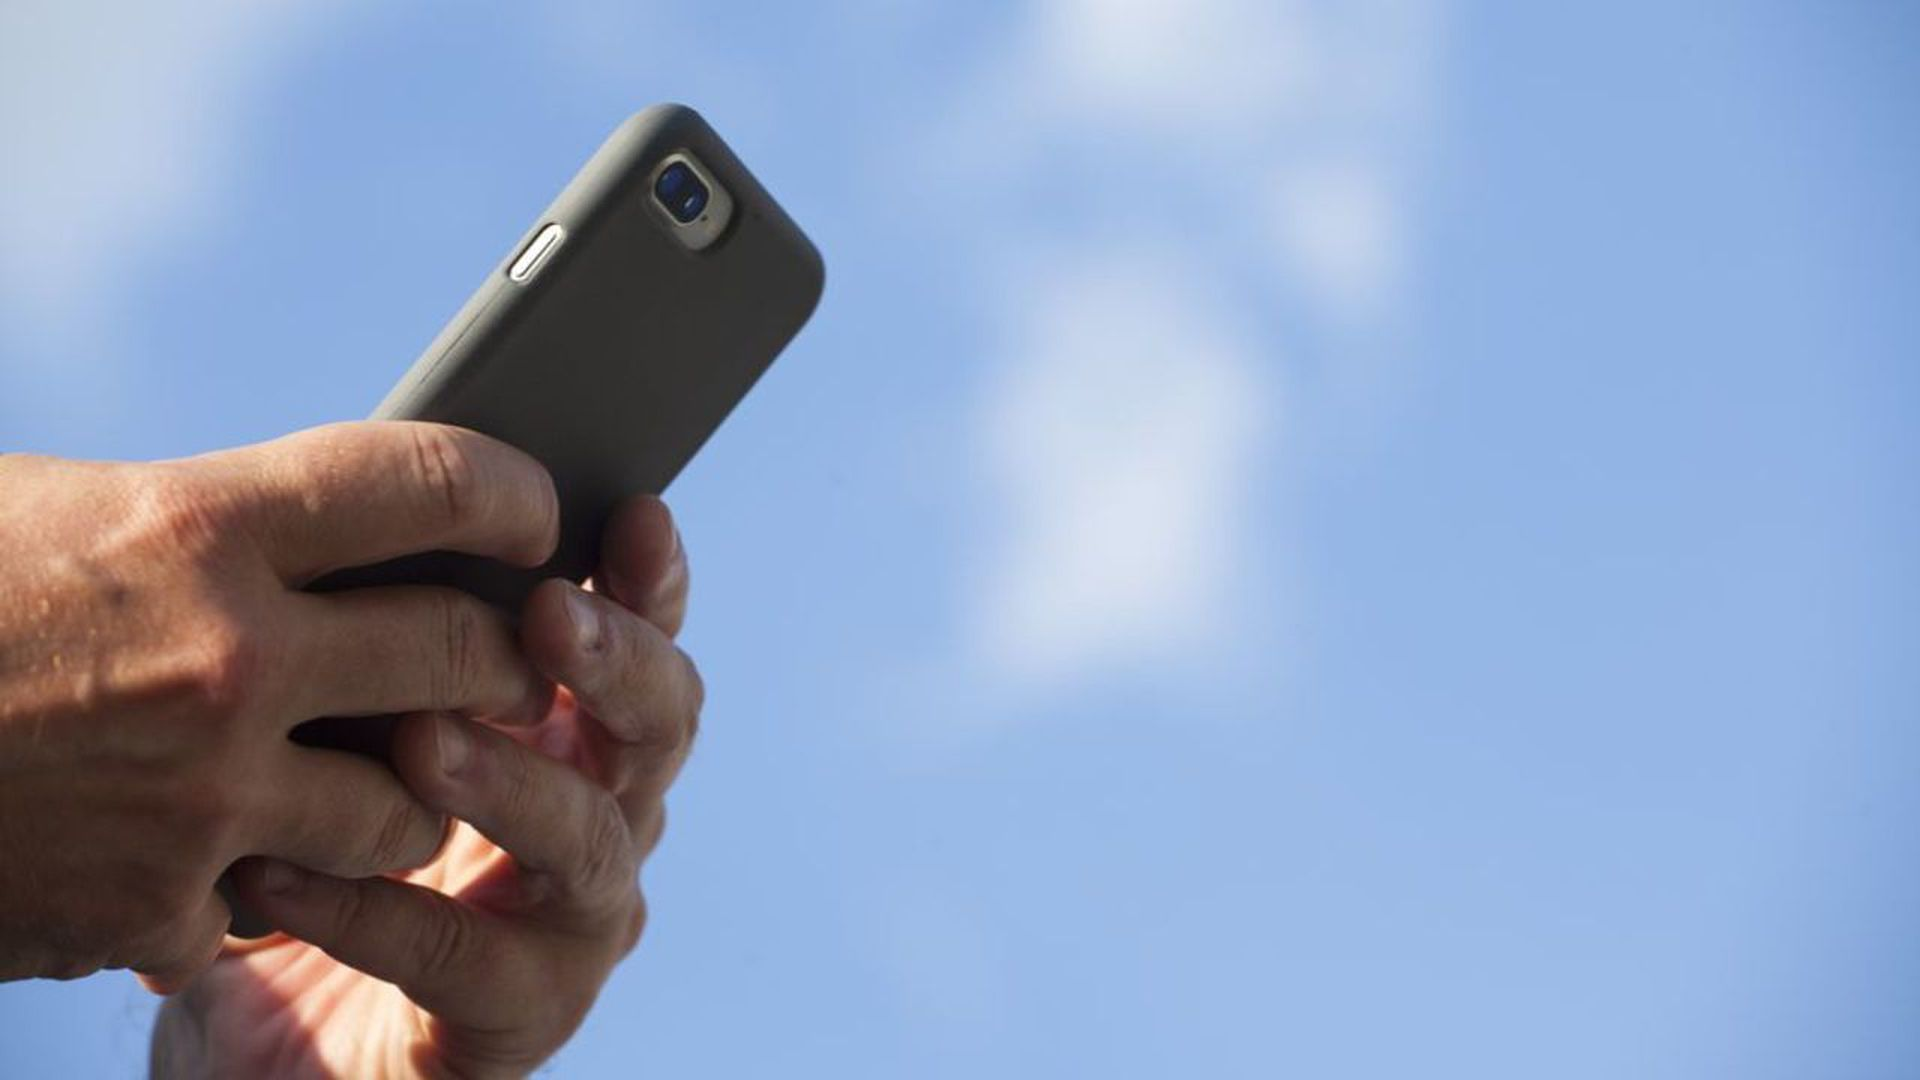 Bill to limit robocalls passes House by near-unanimous vote